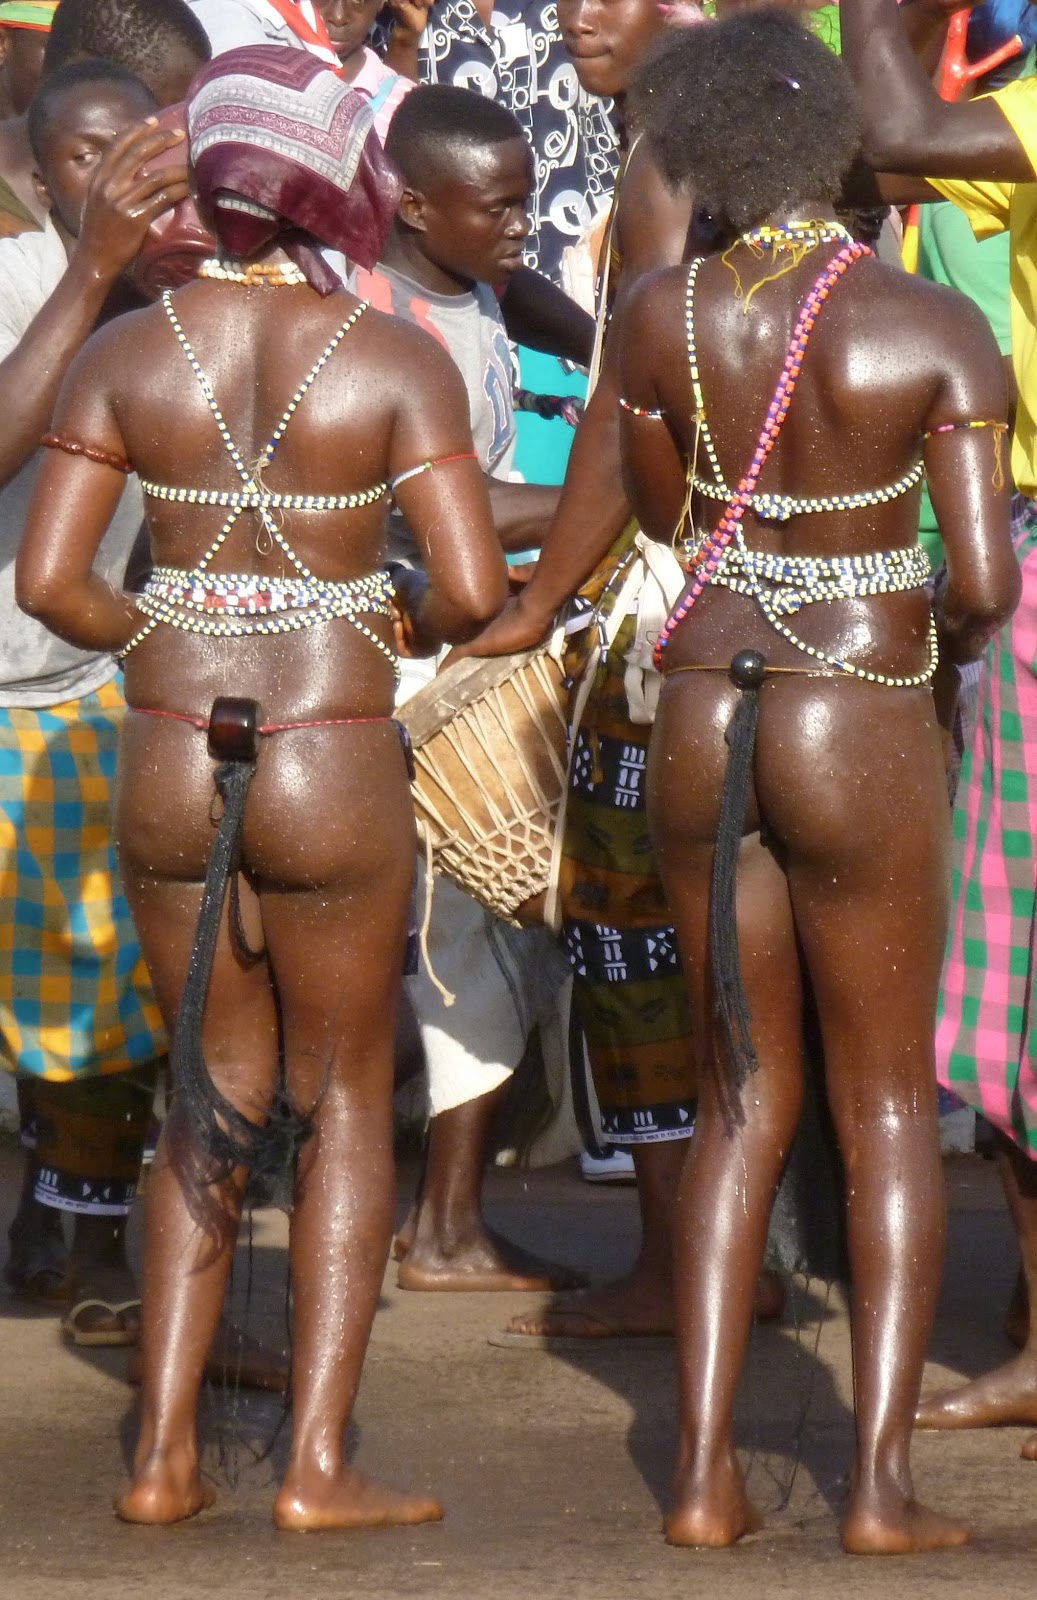 from Jerome naked black girls carnival